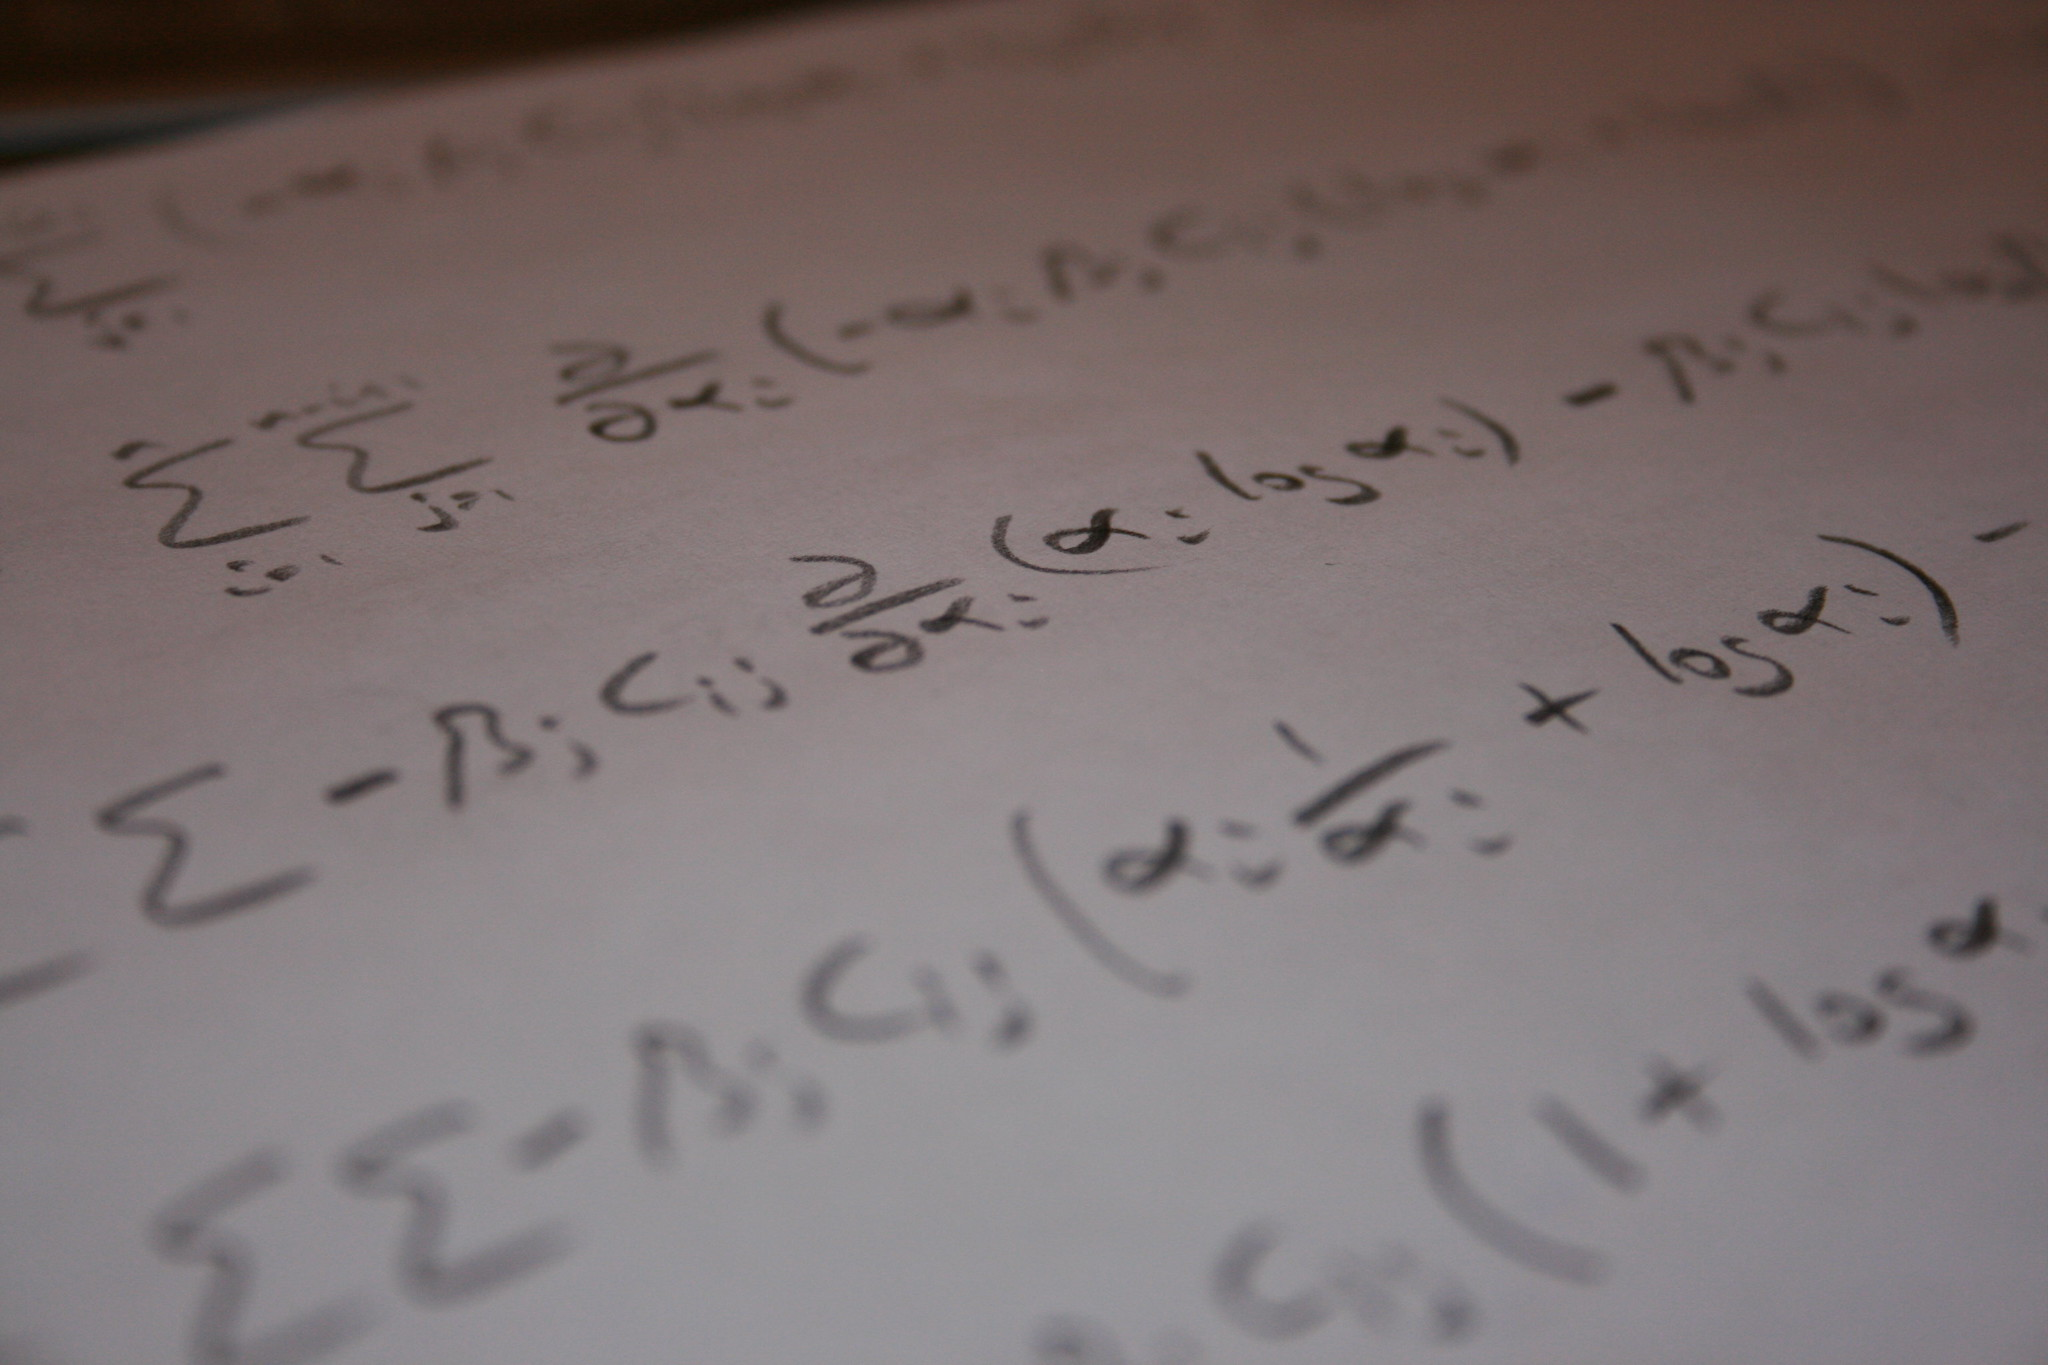 Prominent mathematics question solved for certain number systems